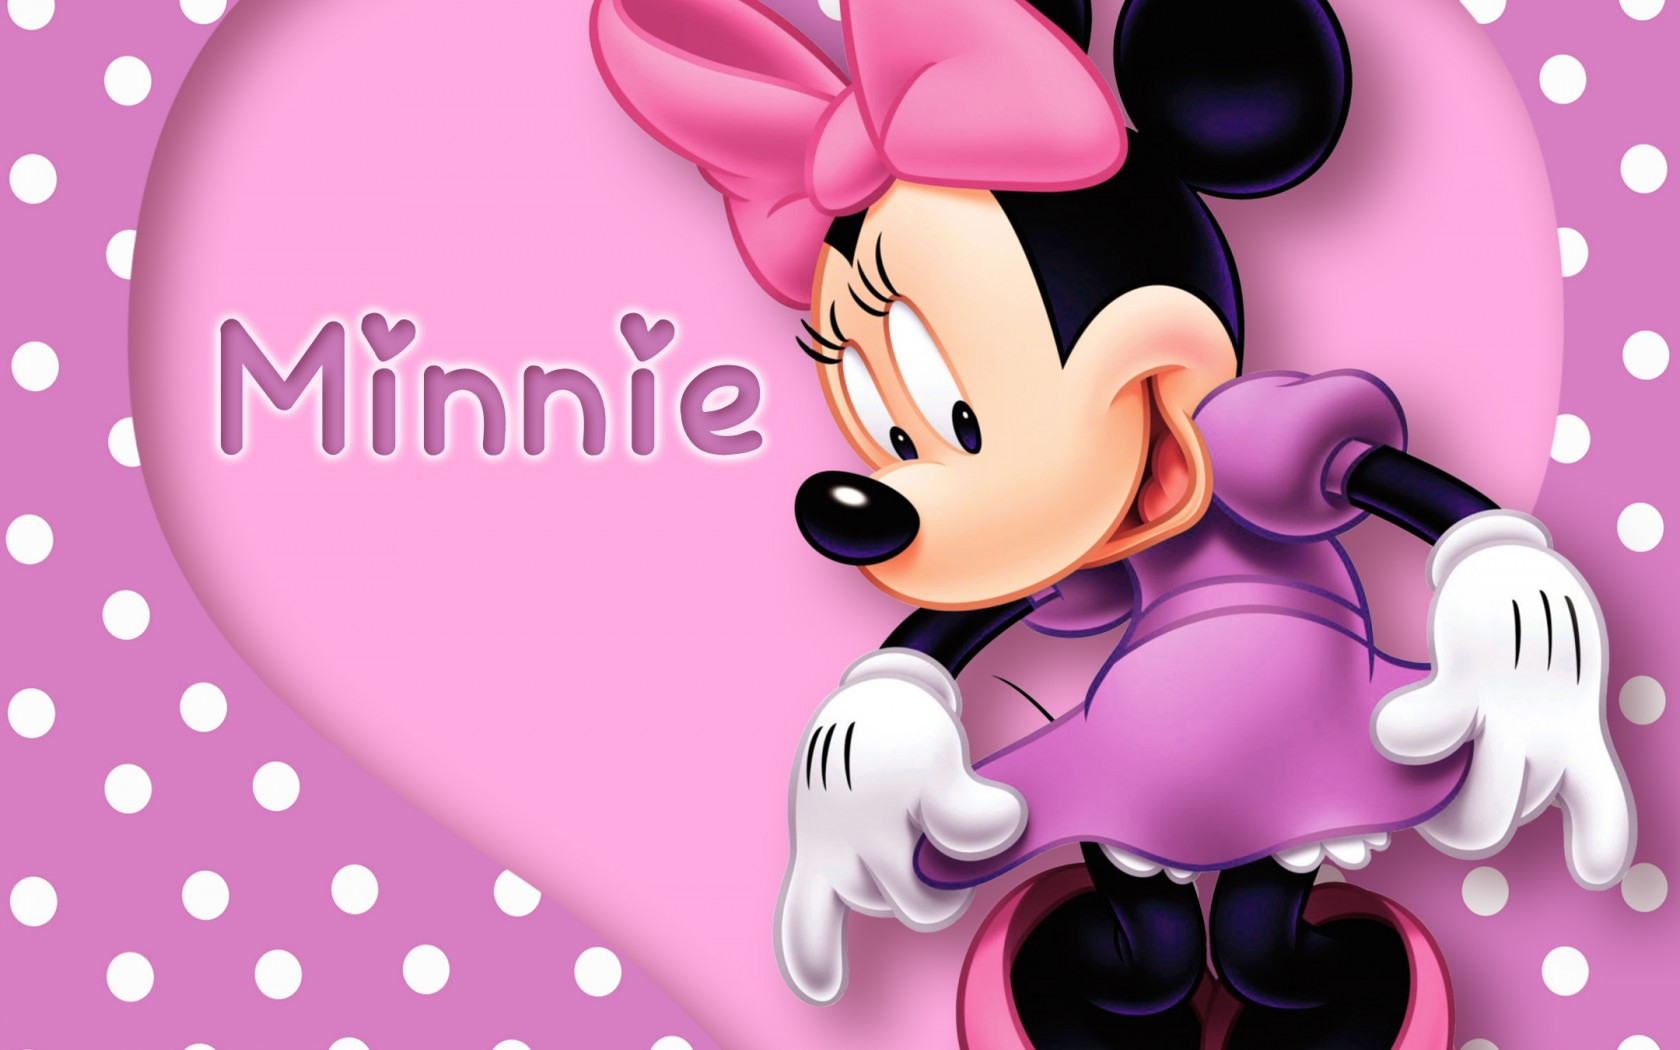 Minnie Mouse Wallpapers